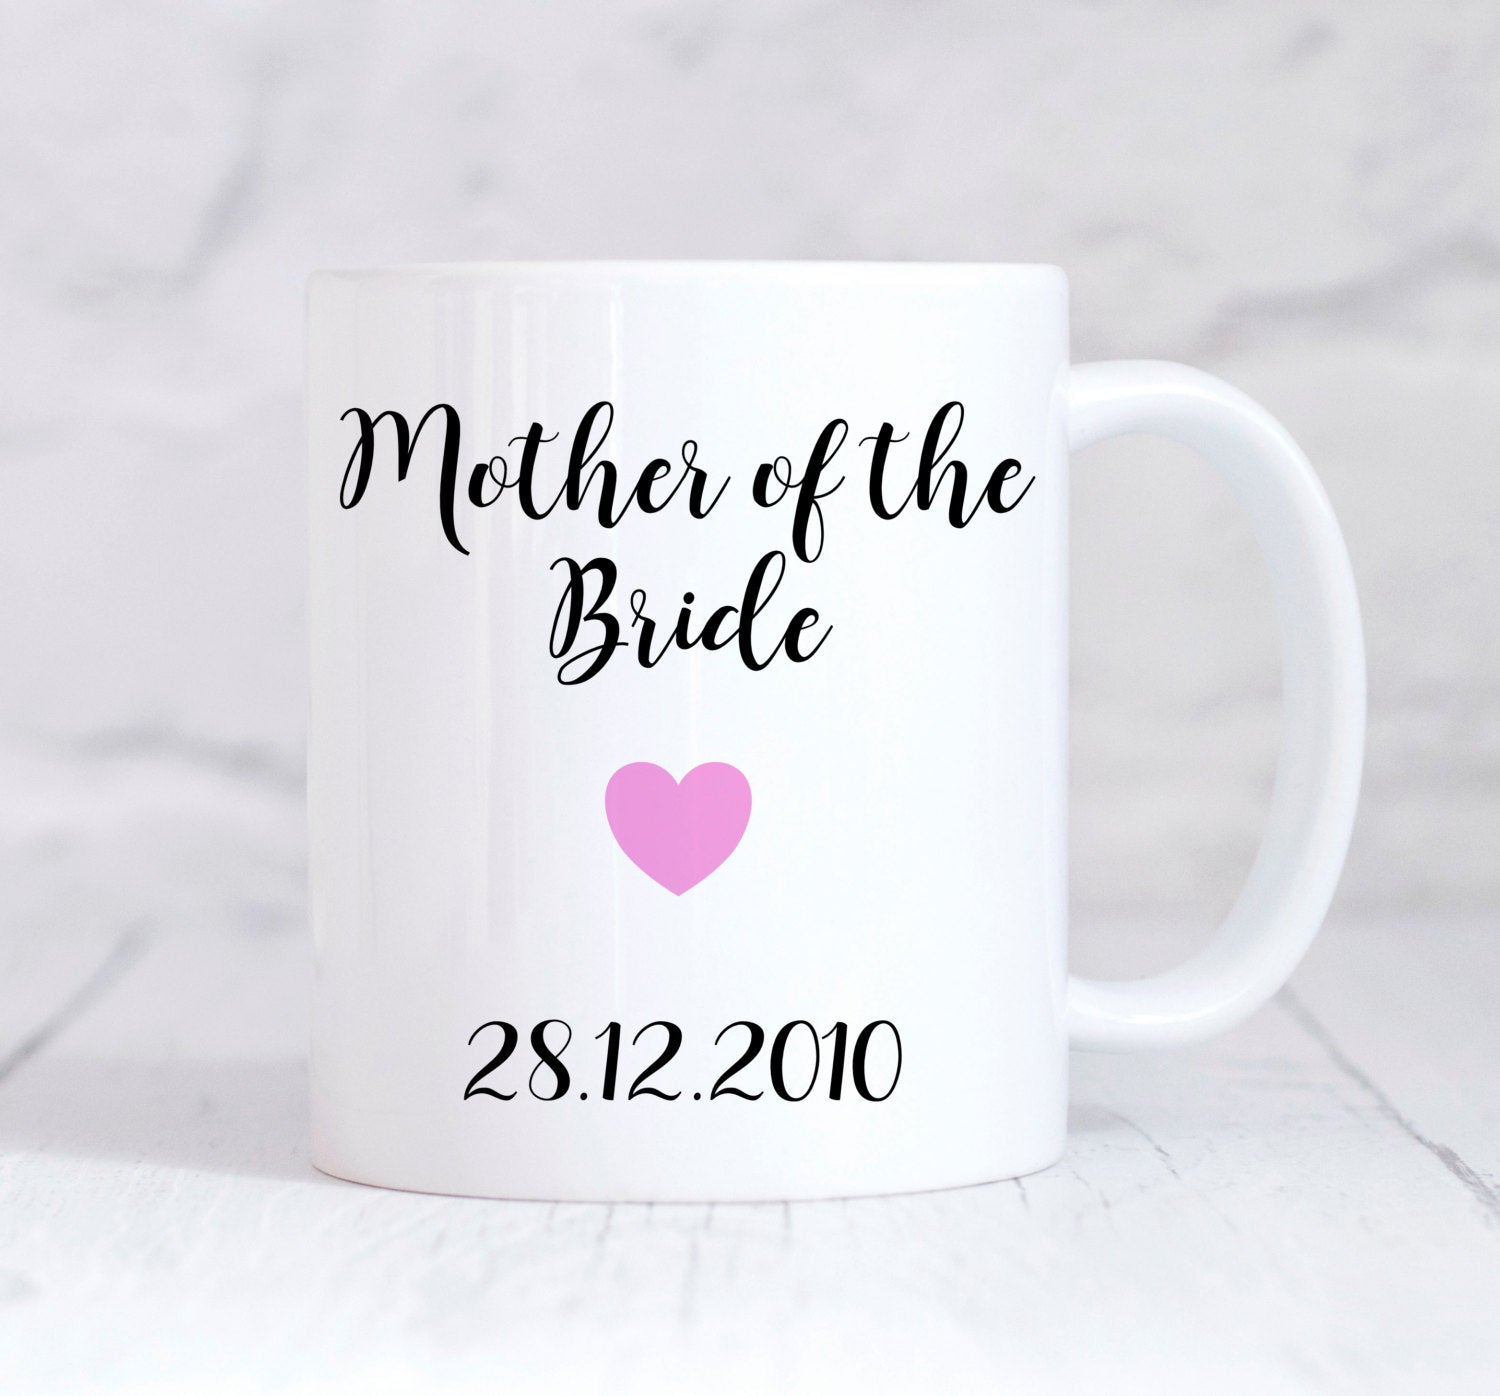 Mother Of The Bride Mug, Mother Of Bride Gift, Wedding Thank You Gift, Personalised Wedding Gift, Personalised Mug, Coffee Mug, Tea Mug, Cup